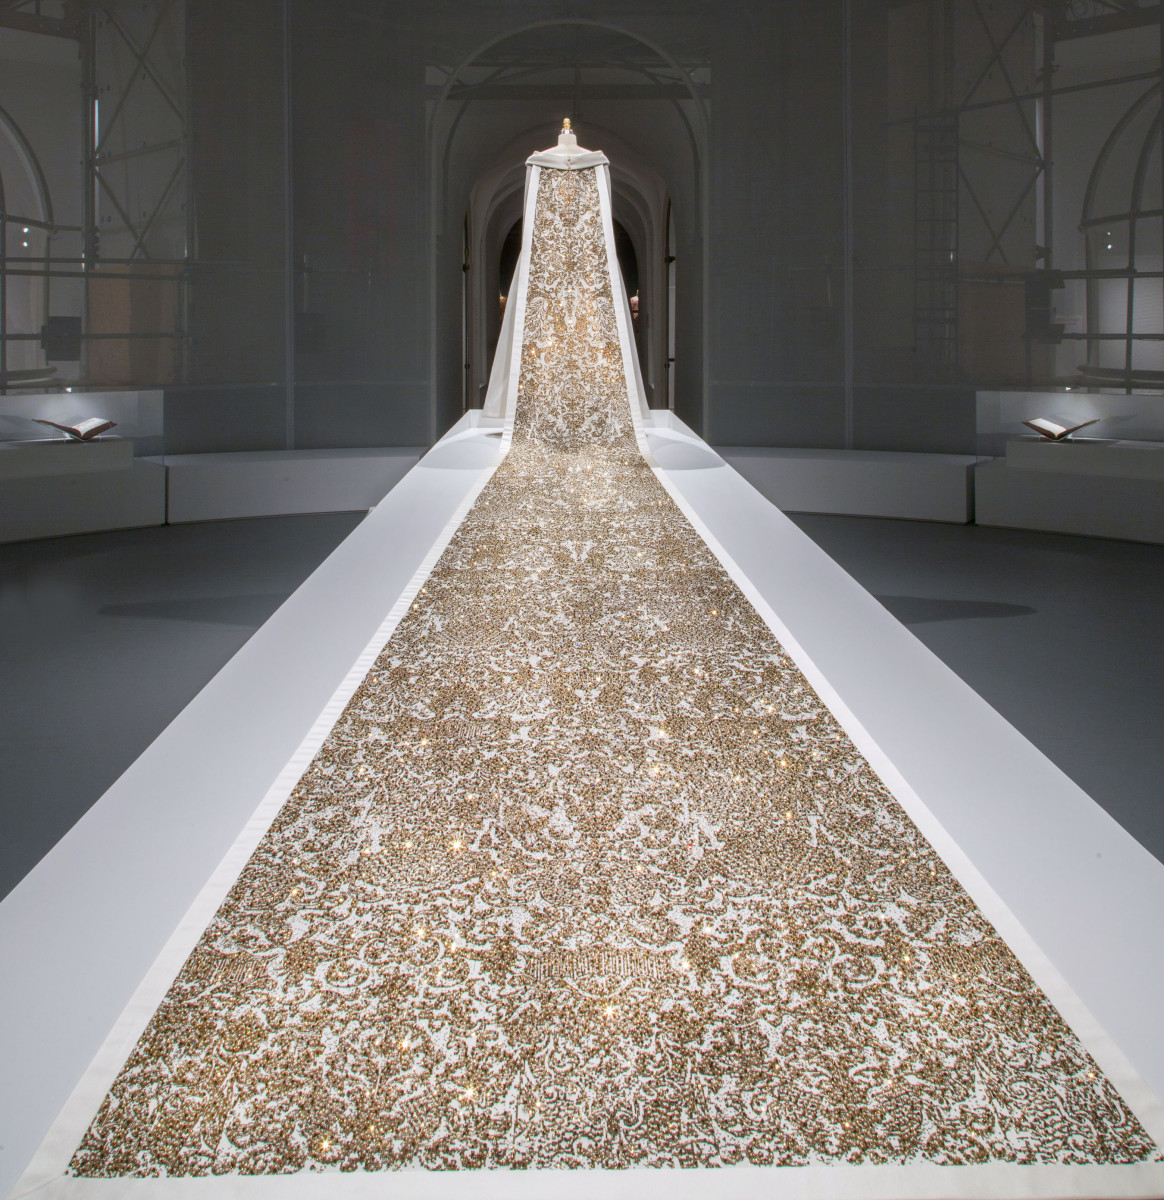 Chanel Wedding ensemble by Karl Lagerfeld for House of Chanel. Photo: The Metropolitan Museum of Art/Nicholas Alan Cope